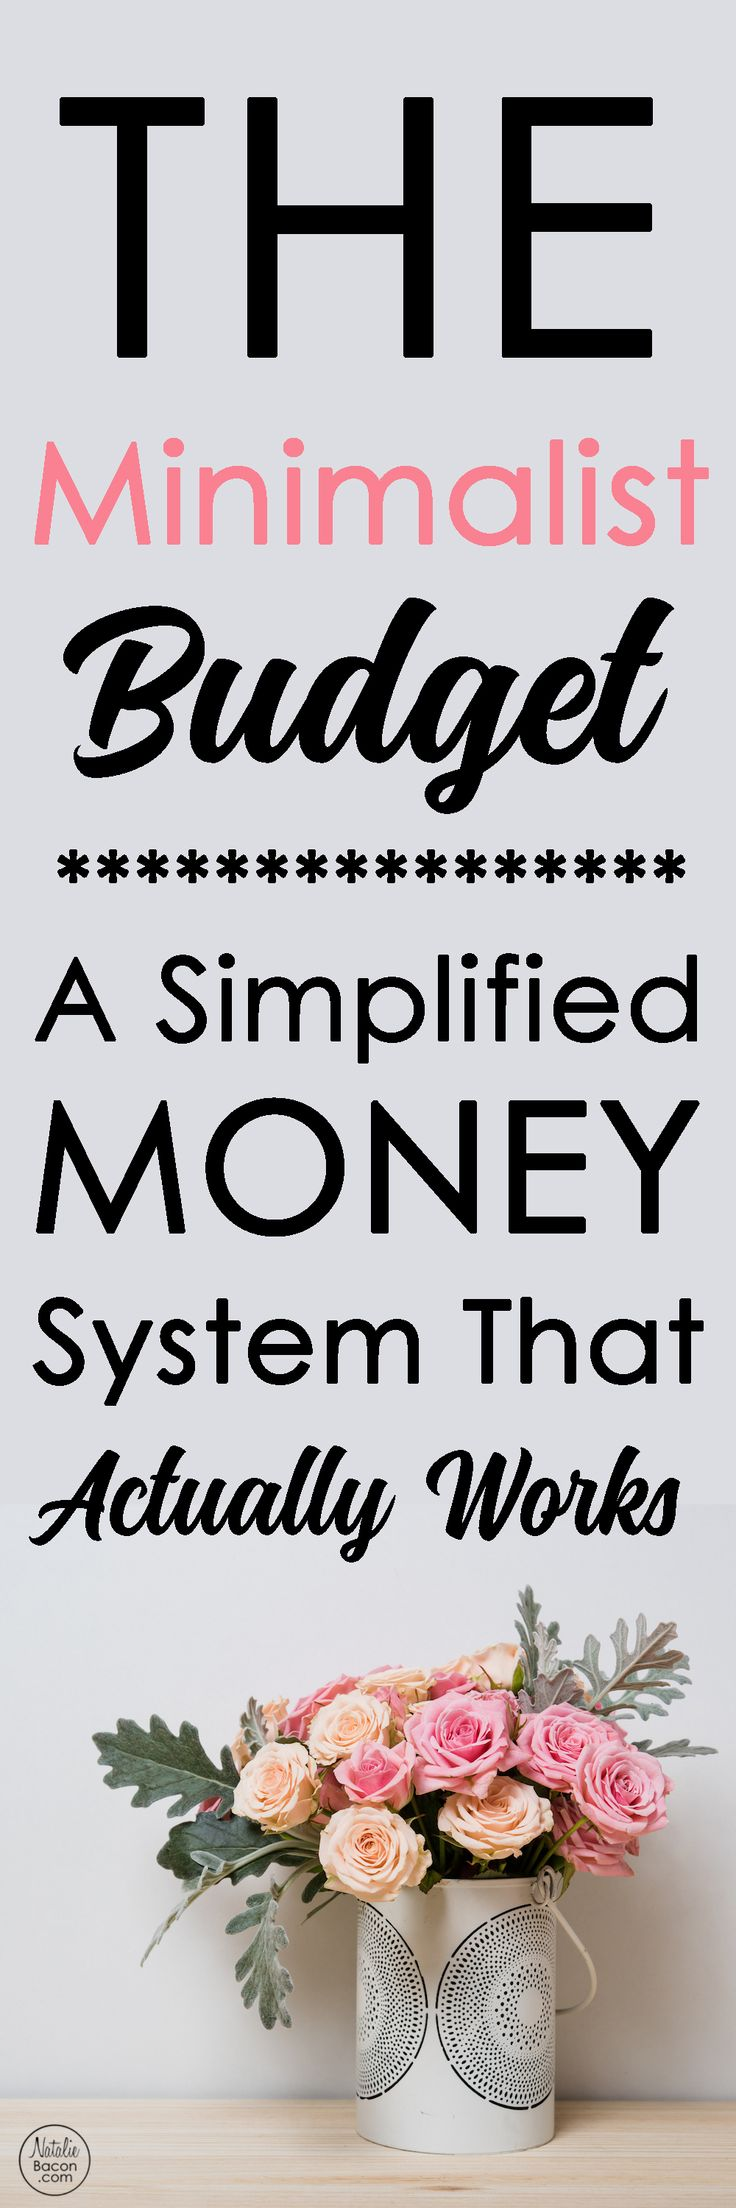 The Minimalist Budget: A Simplified Money System That Actually Works via @natalierbacon